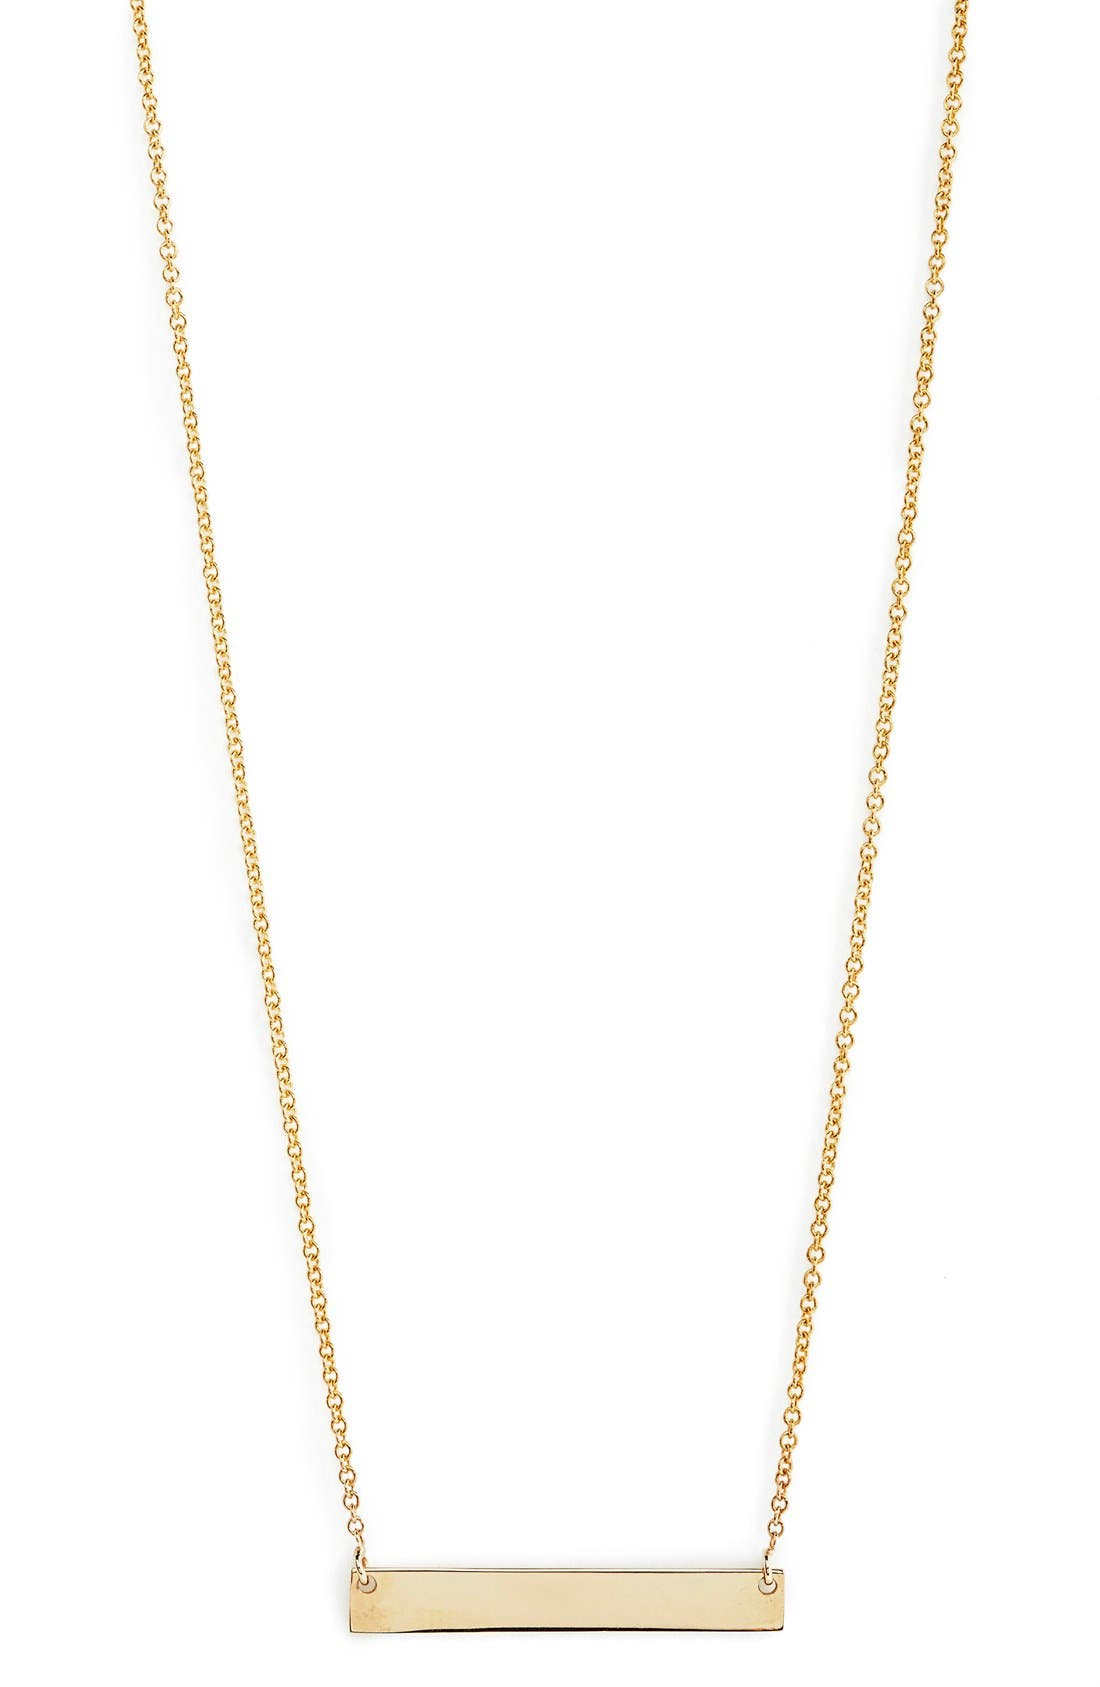 Alternate Image 1 Selected - Bony Levy 14k Gold Bar Pendant Necklace (Nordstrom Exclusive)